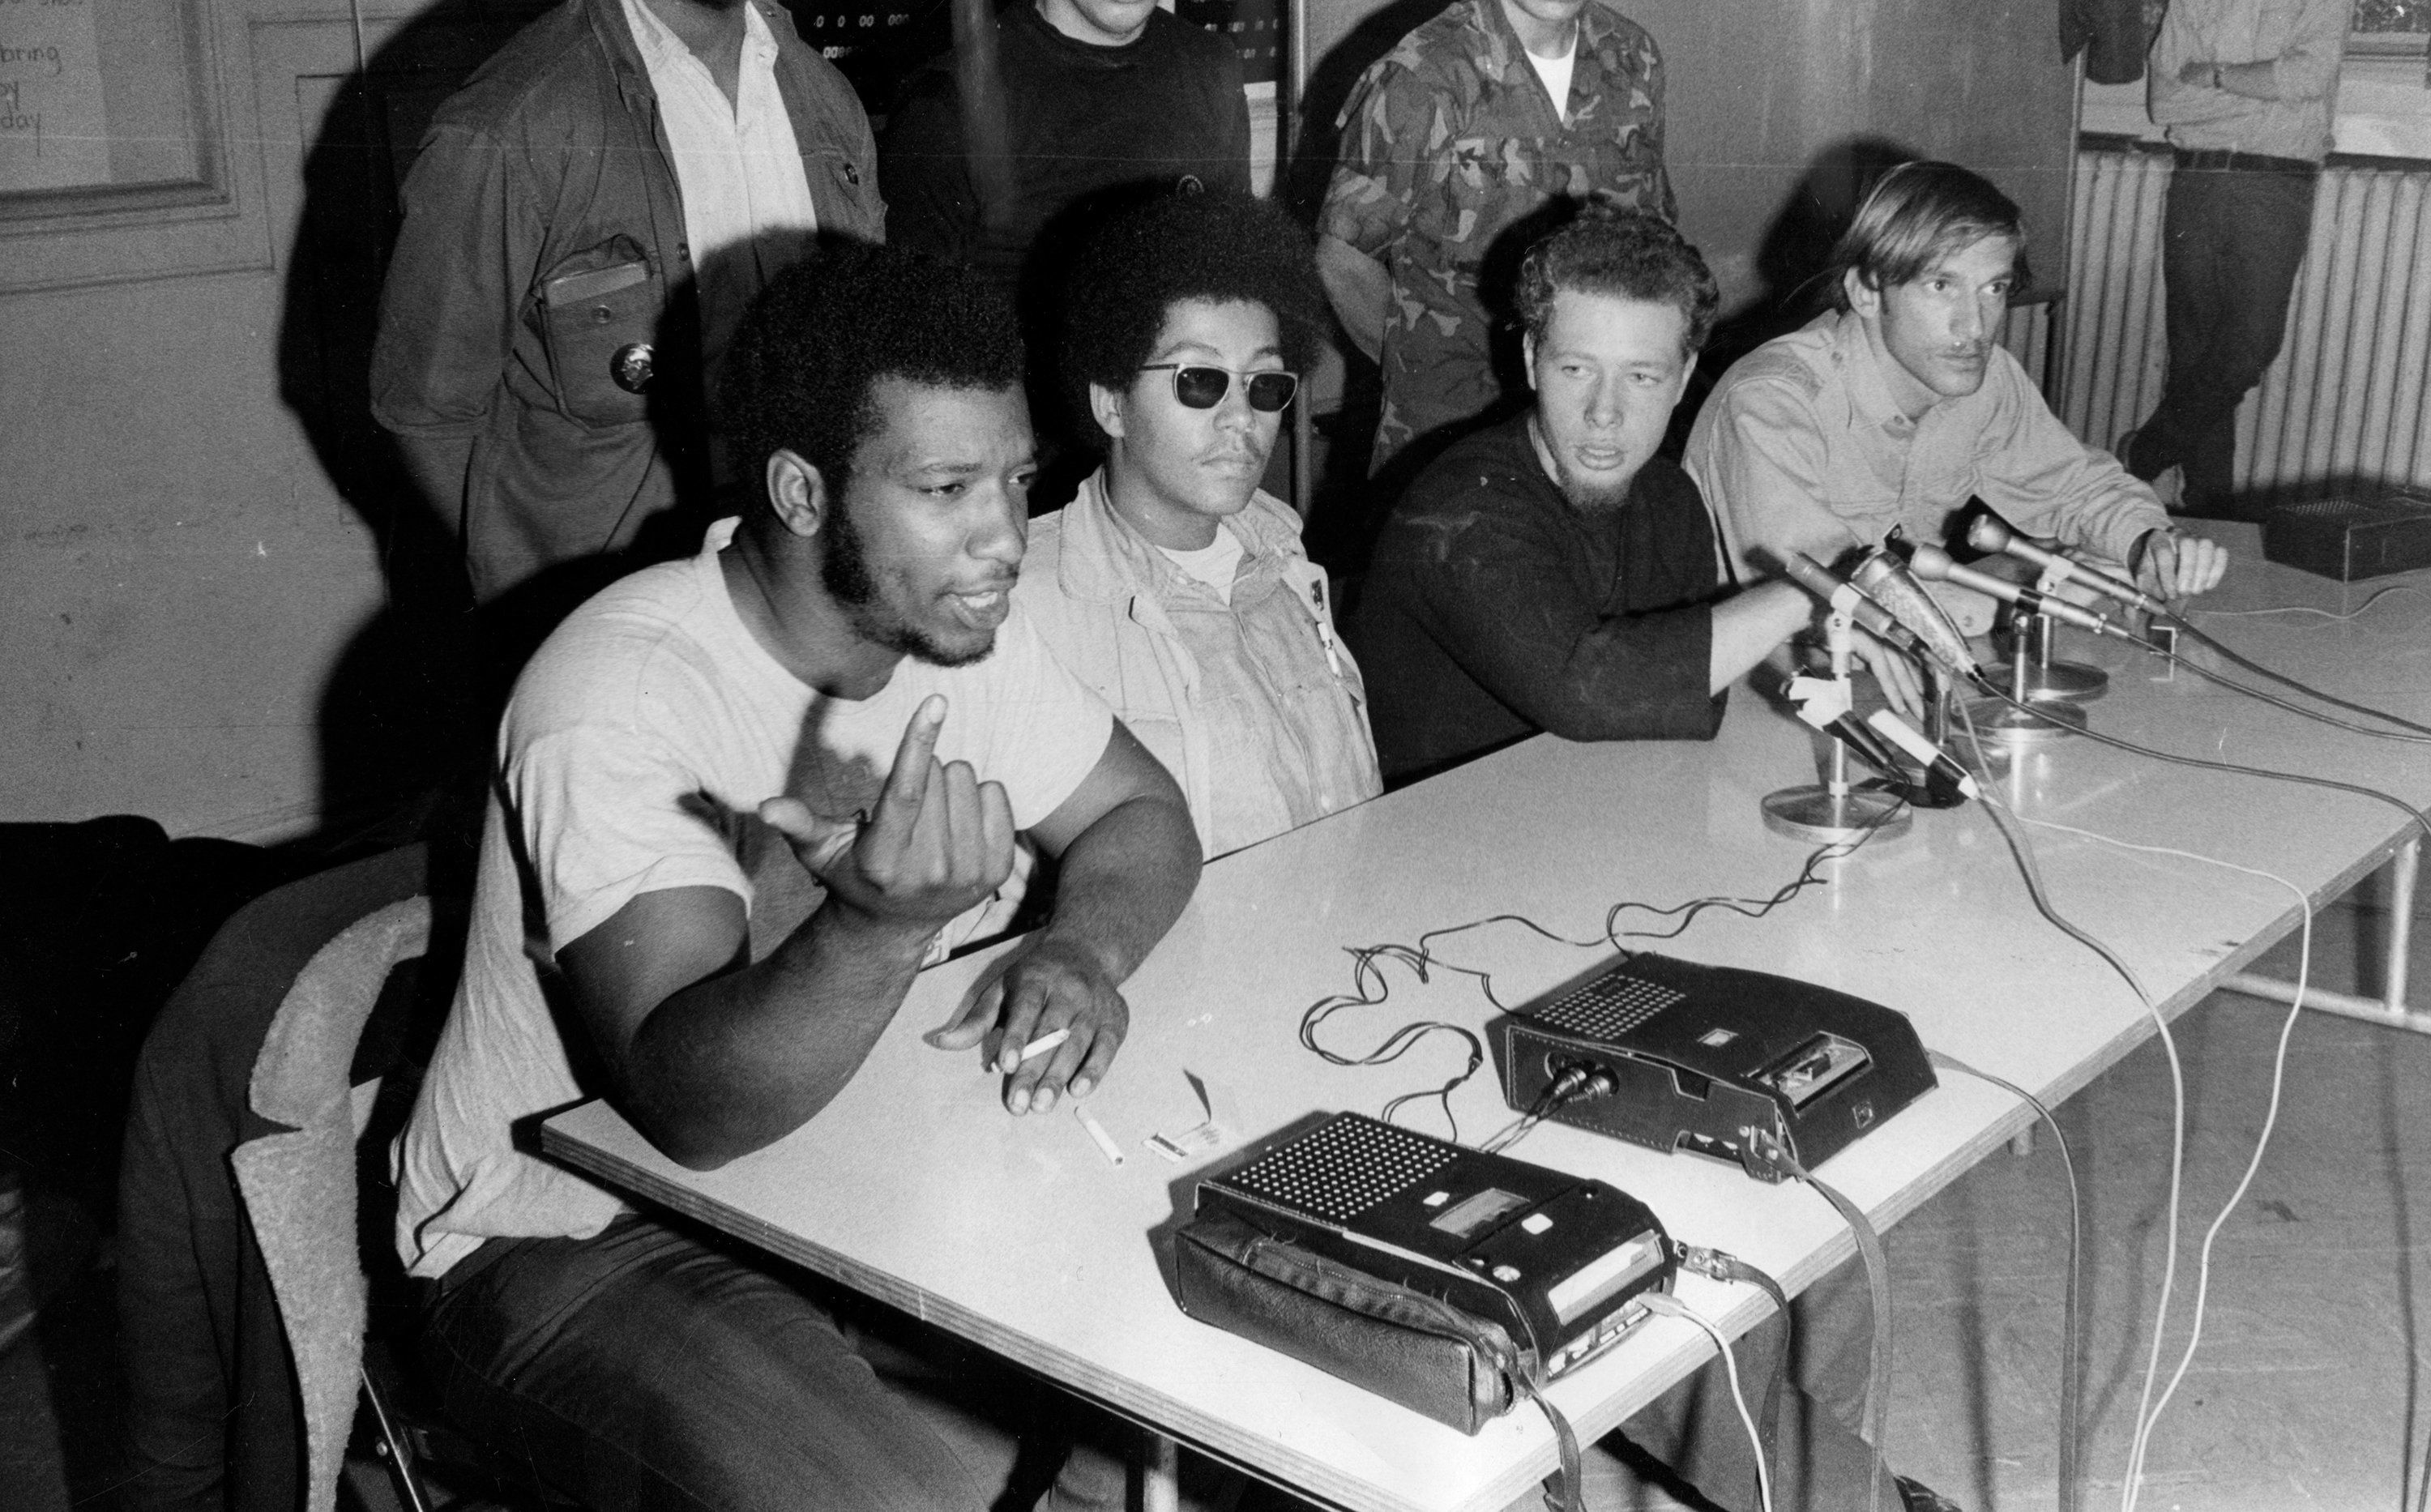 Fred Hampton, left, chairman of the Black Panthers, speaks during a press conference with the Young Lords, a Puerto Rican civil and human rights group, on Oct. 10, 1969, at Holy Covenant United Methodist Church in Chicago. With Hampton are, from left, Pablo 'Yoruba' Guzman, a Young Lord from New York; Jose 'Cha-Cha' Jimenez, founder of the Young Lords of Chicago; and Mike Klonsky, a spokesman for Students for a Democratic Society. (Dave Nystrom/Chicago Tribune/TNS via Getty Images)